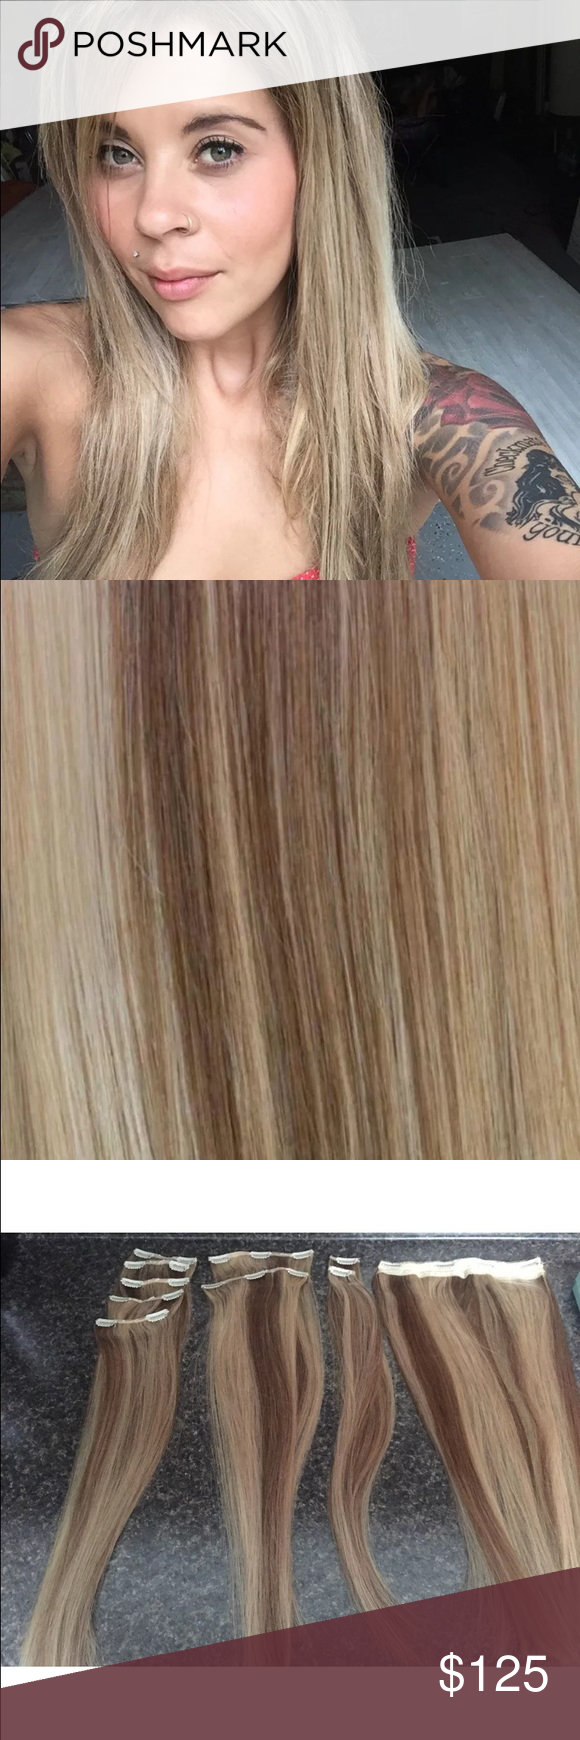 Blonde Clip In Hair Extensions Milkblush Dirty Looks Brand Girl